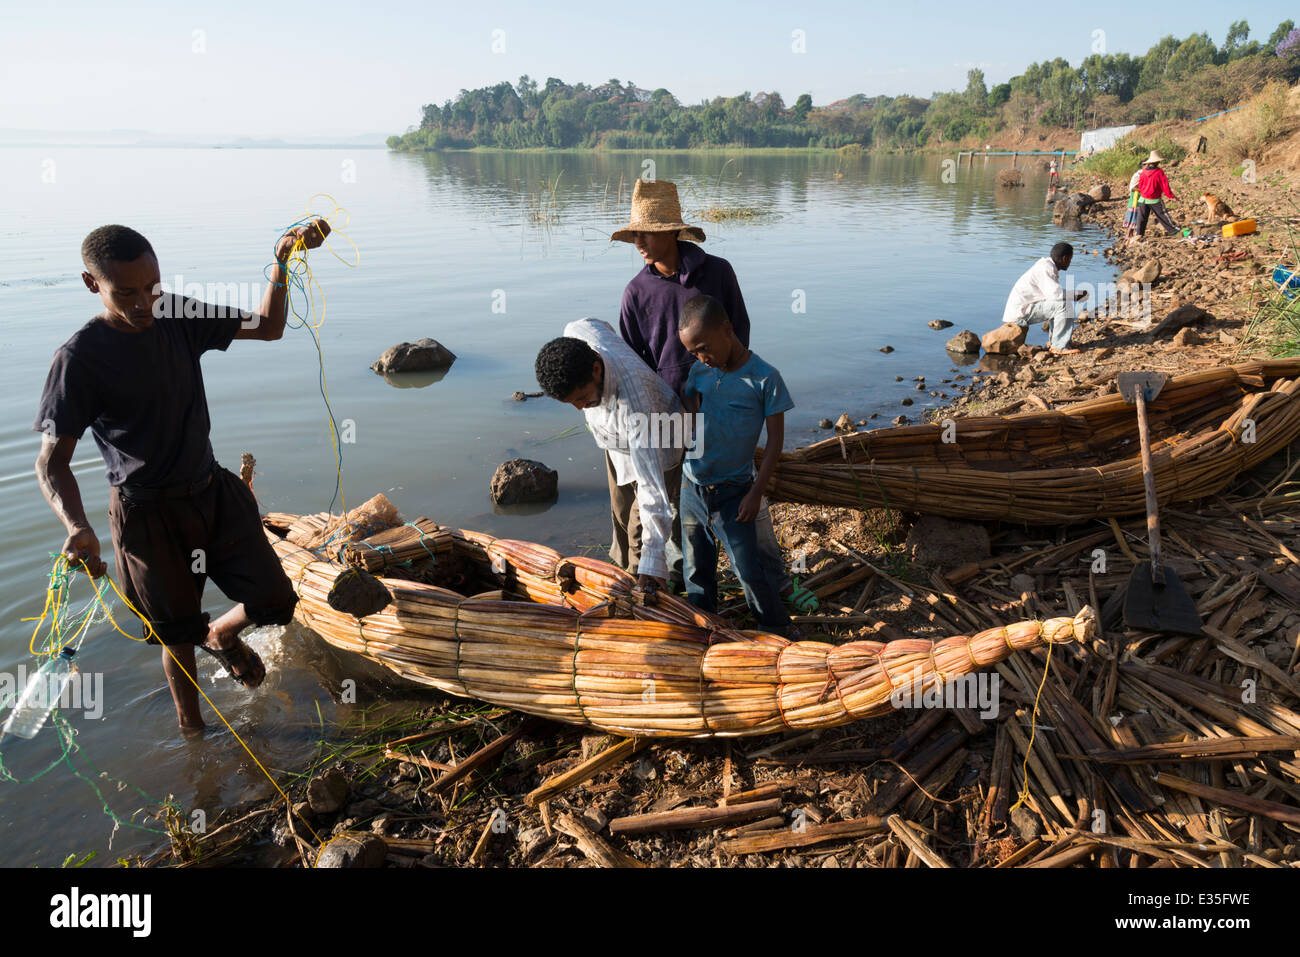 Lake Tana. Afaf. Zege peninsula. Northern Ethiopia. - Stock Image